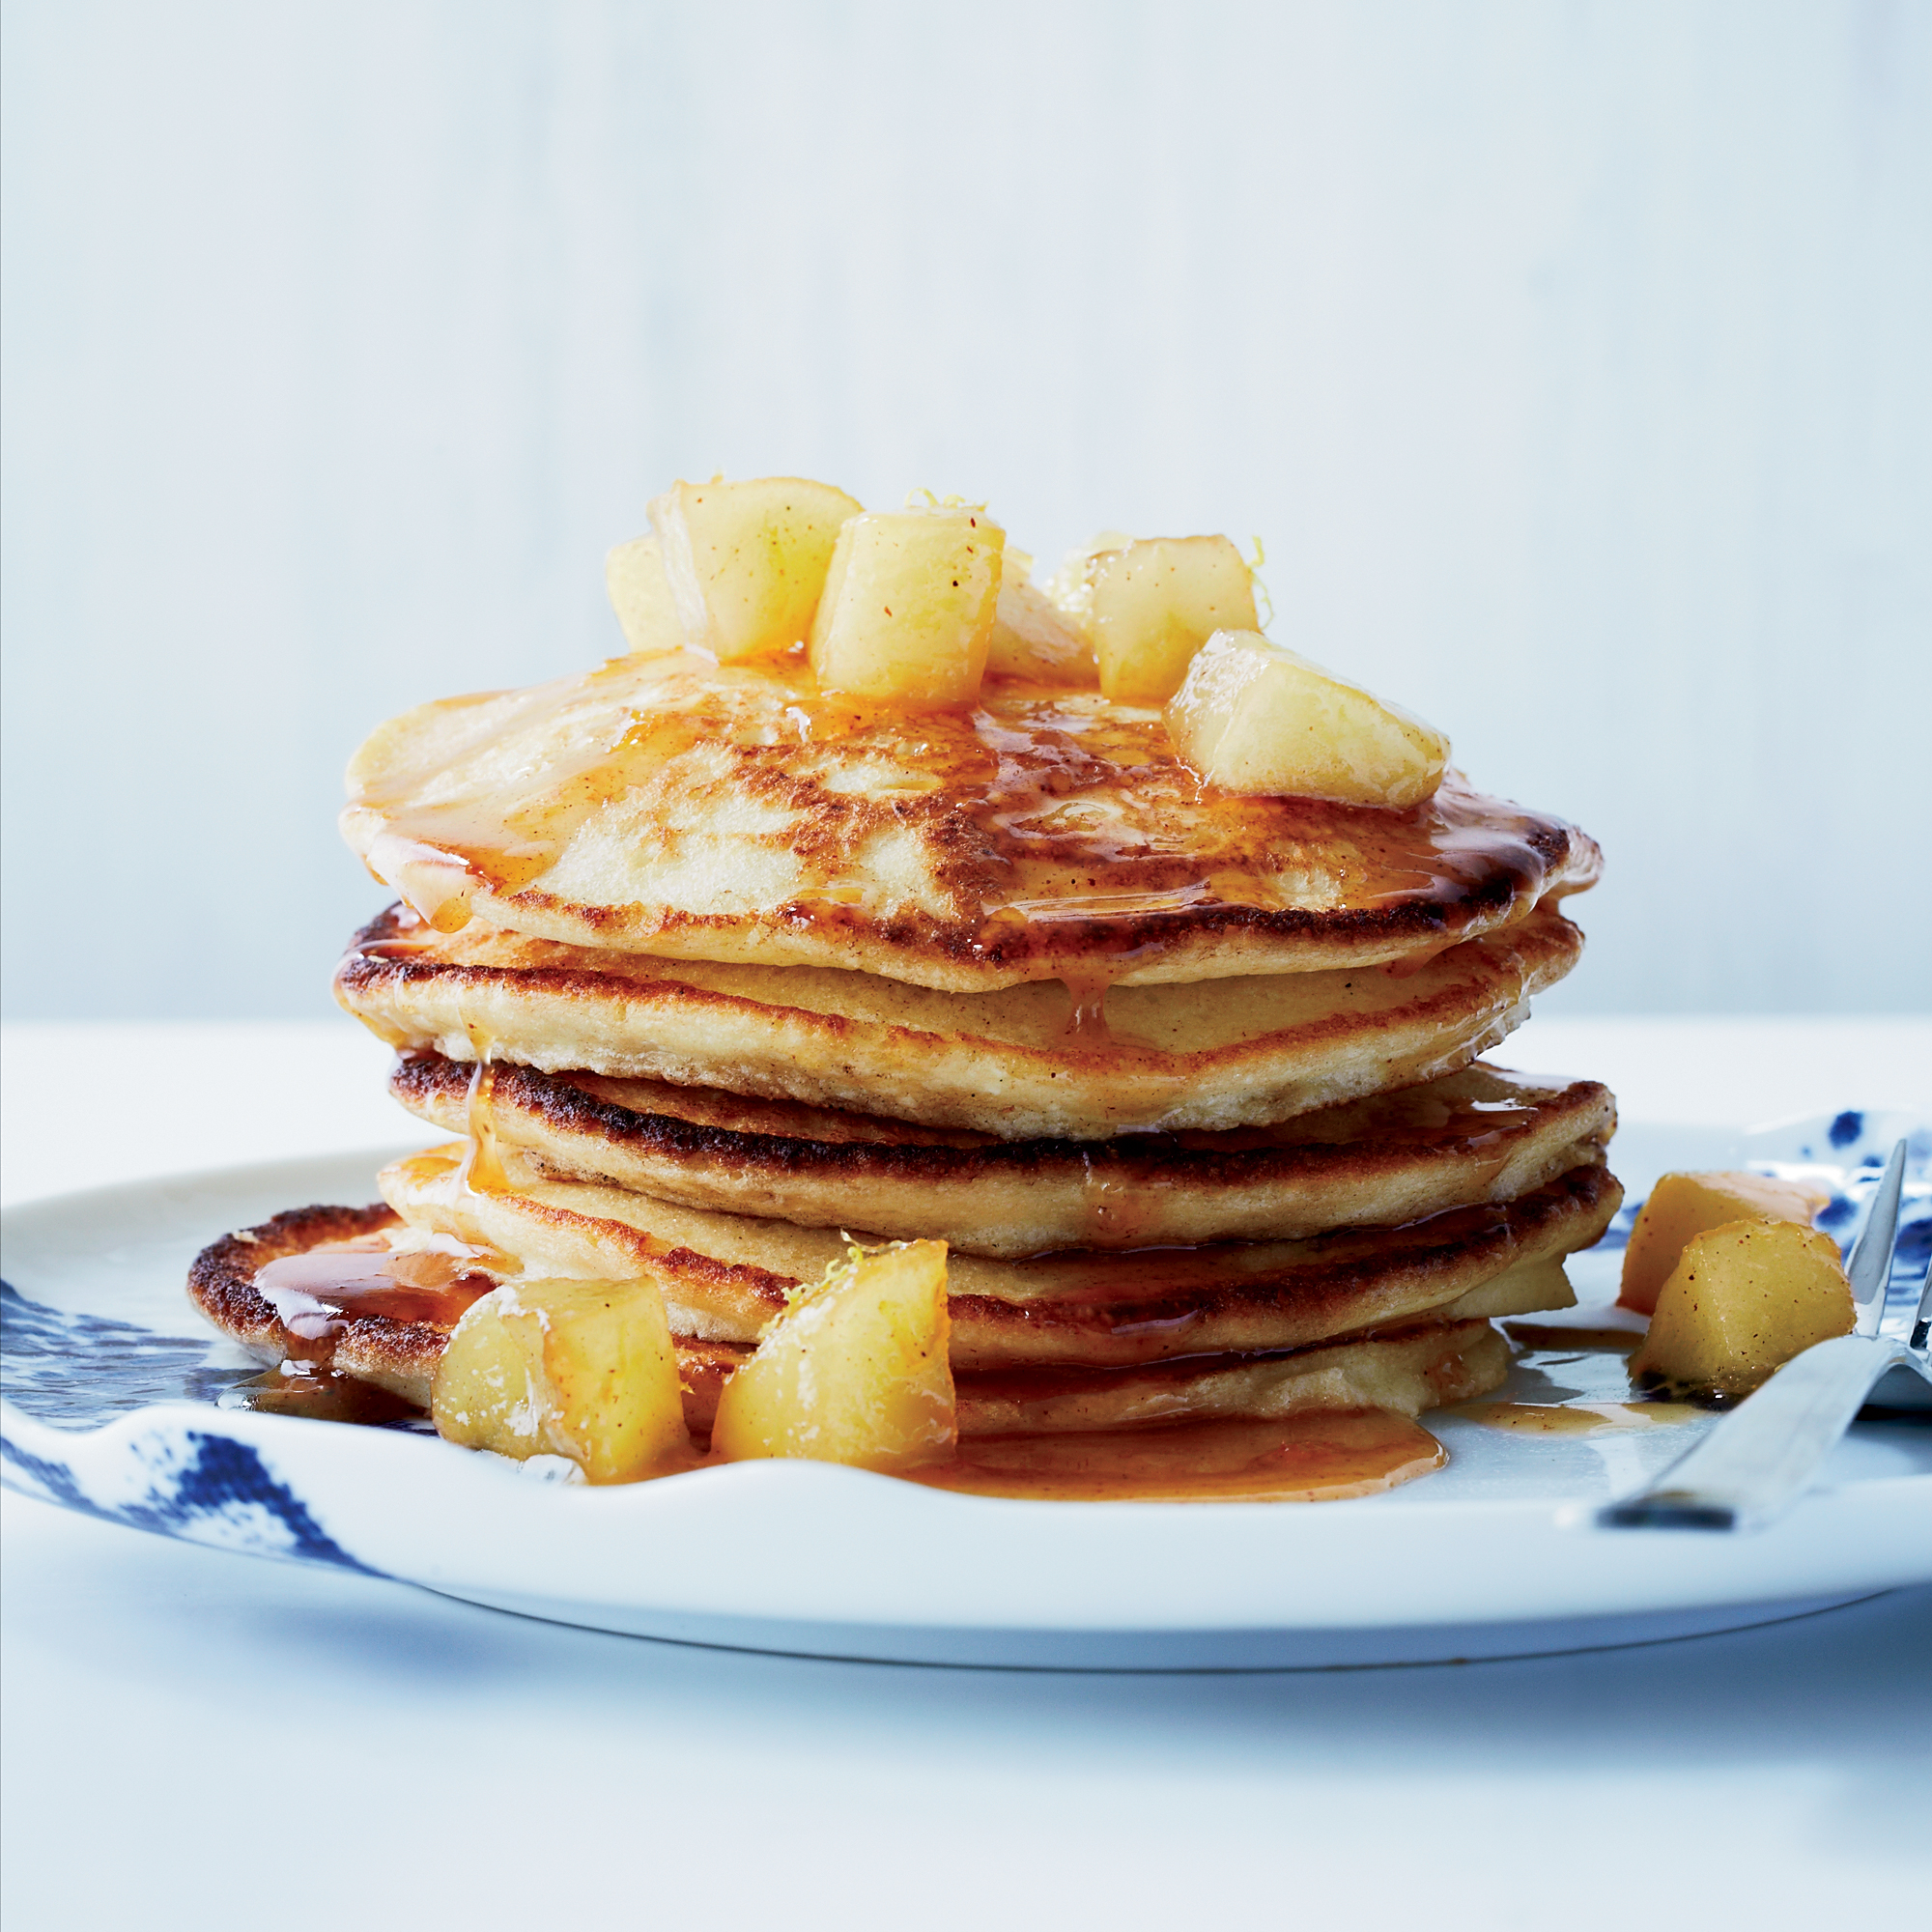 Lemon-Ricotta Pancakes with Caramelized Apples